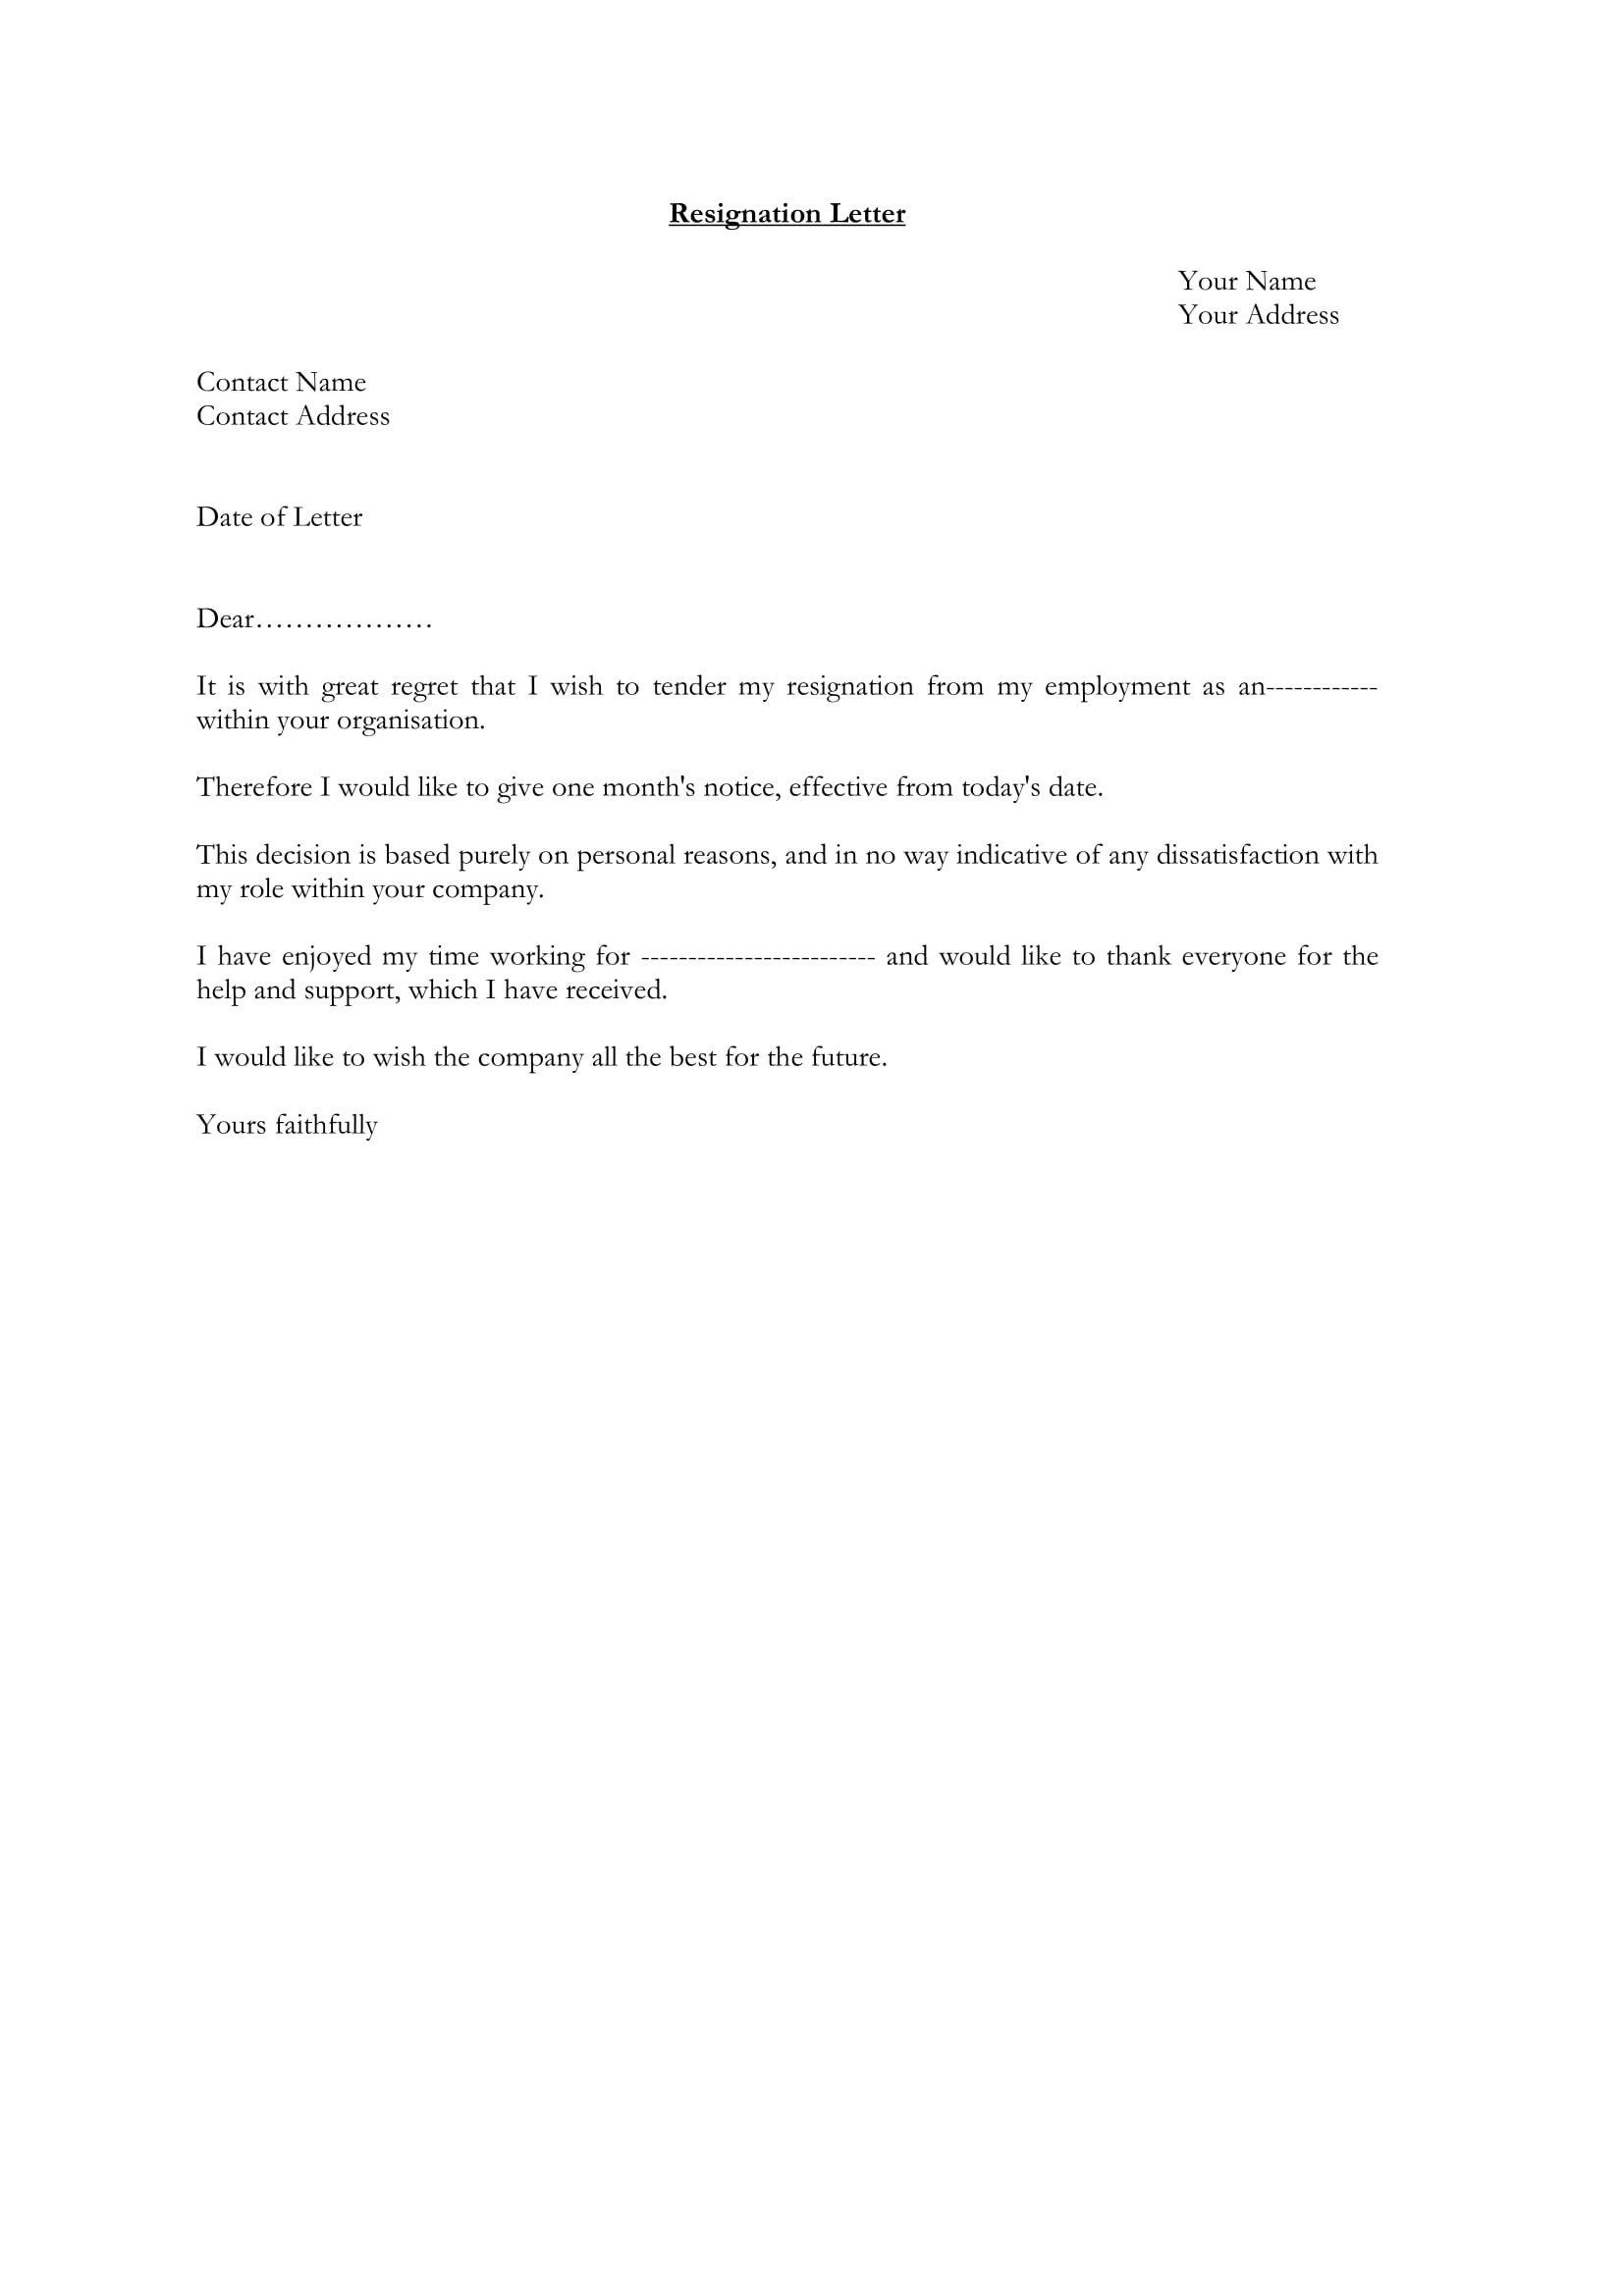 12 Employee Resignation Letter Examples  PDF Word  Examples